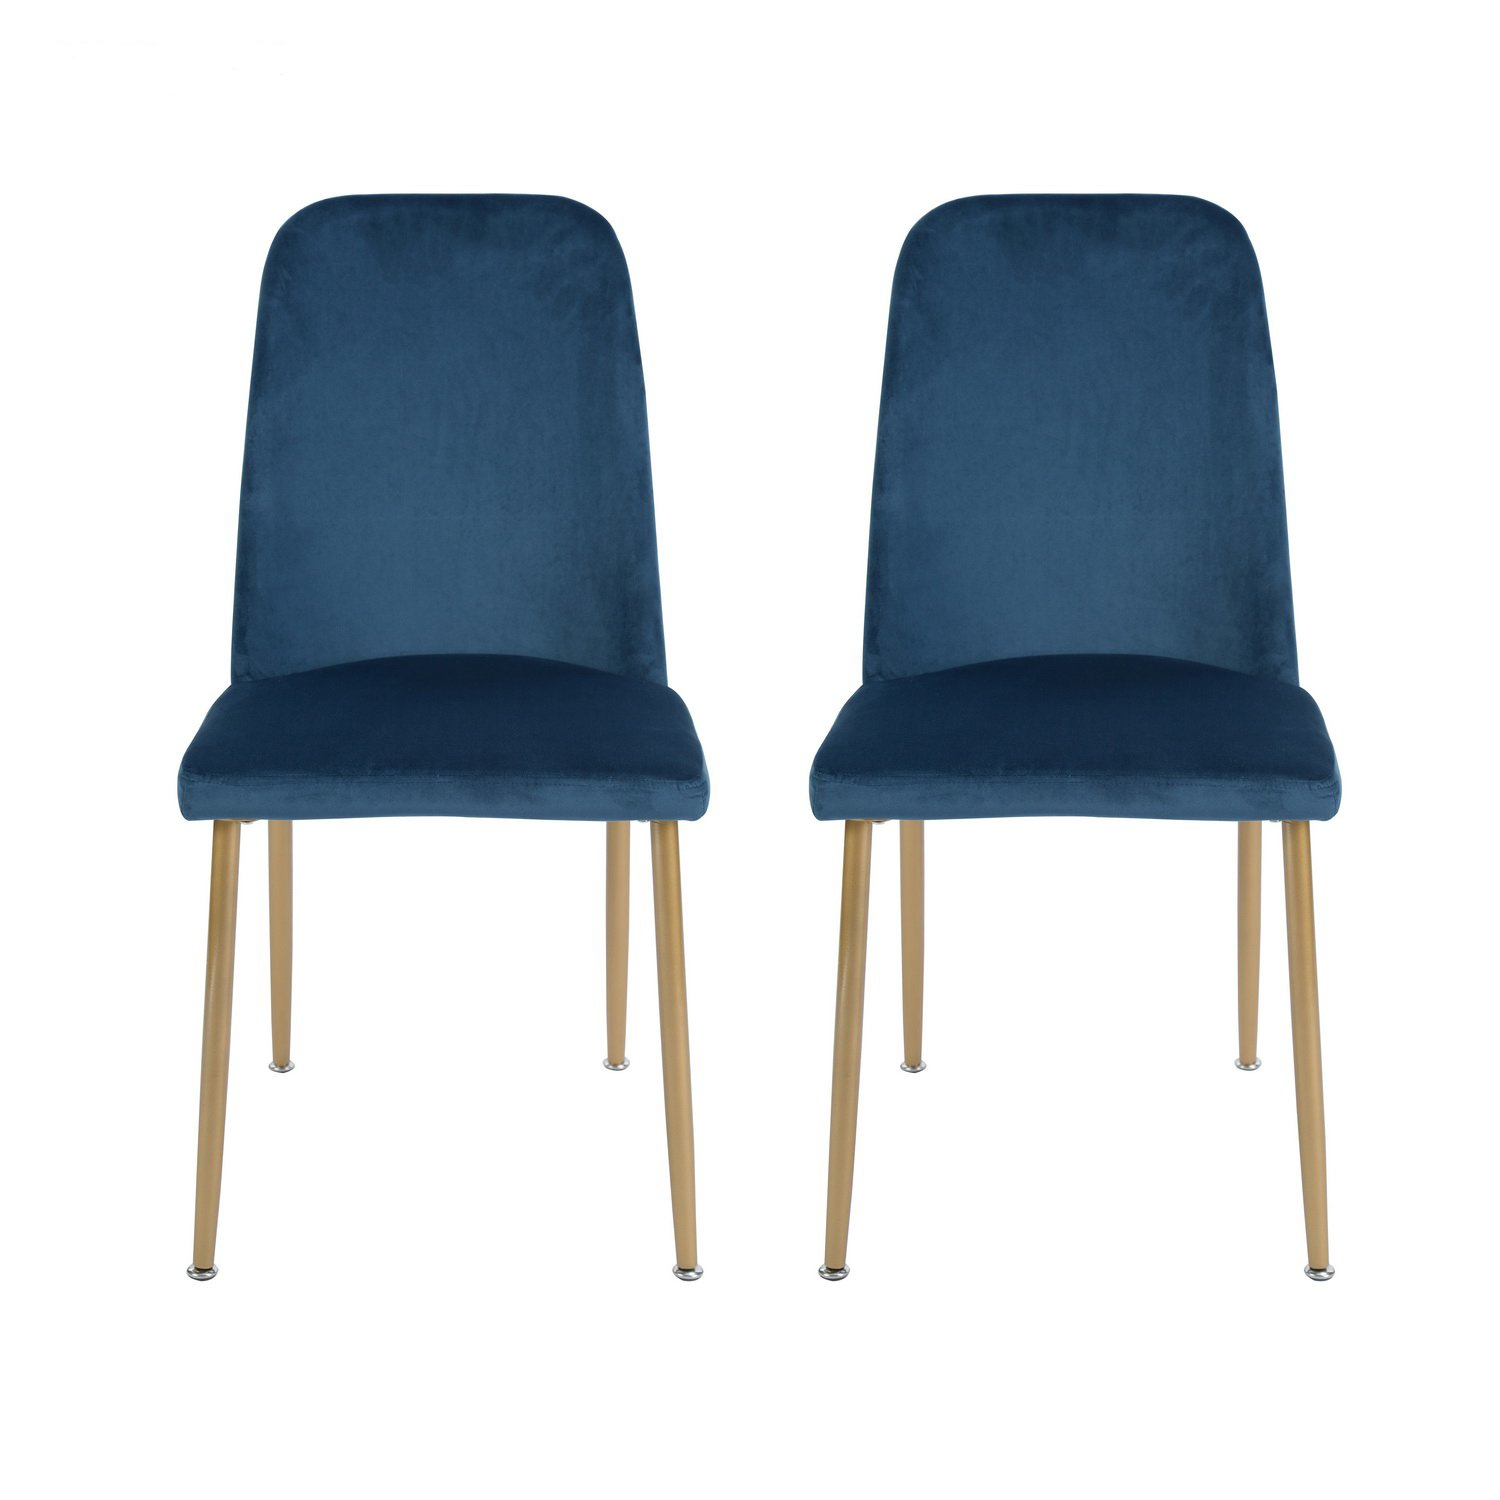 H.J WeDoo Set of 2 Velvet Dining Chairs High Back Chairs, Modern Style Soft Upholstered Back and Cushion, Metal Legs in Spray Gold Finish - Blue